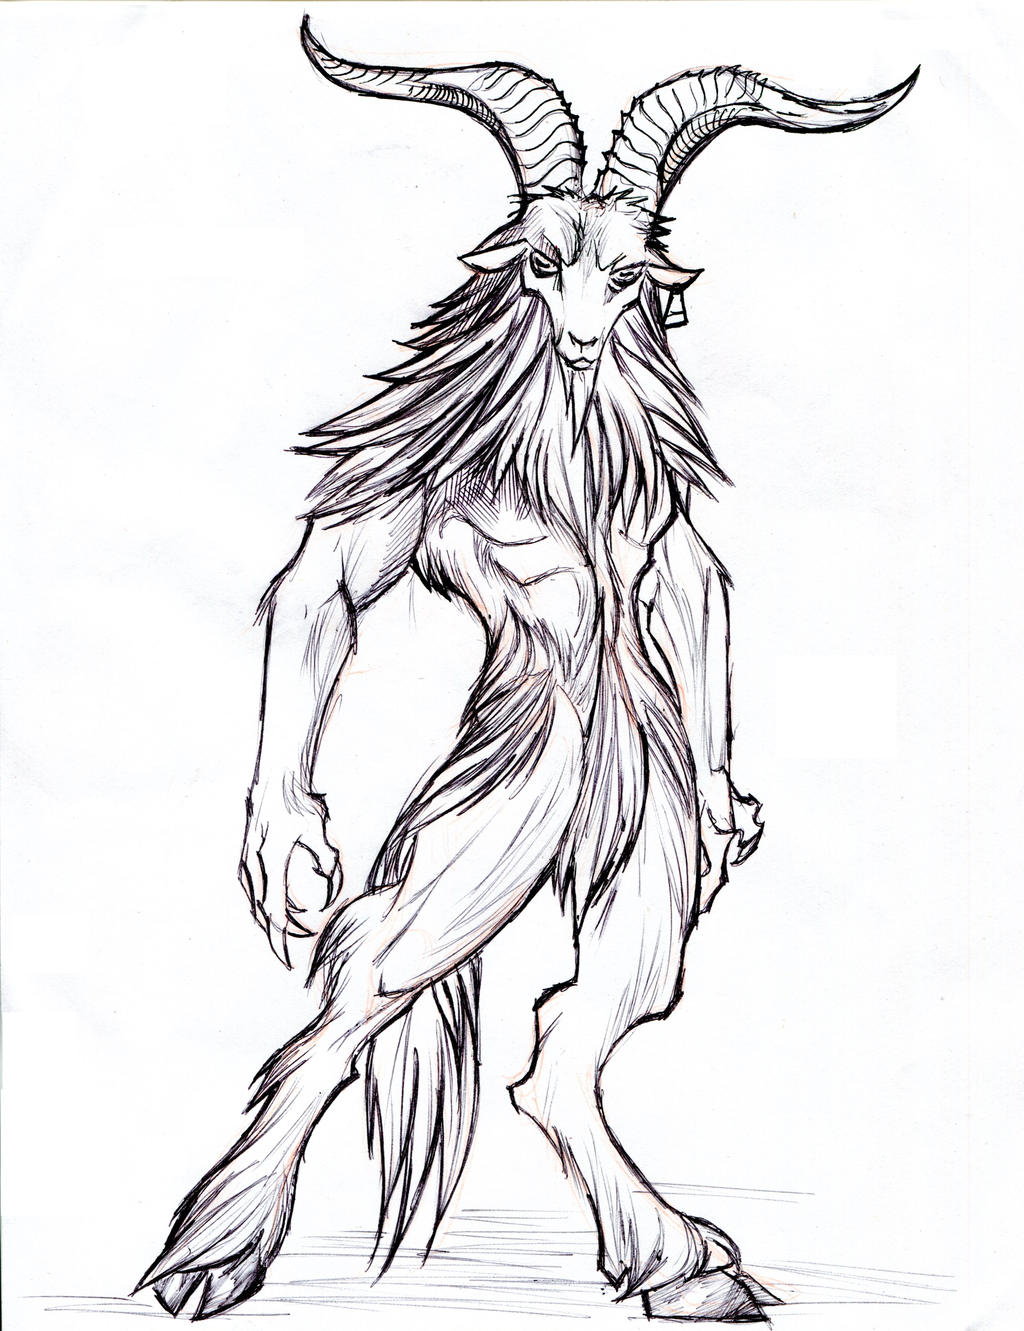 Satyr goat demon by winddragon24 on DeviantArt